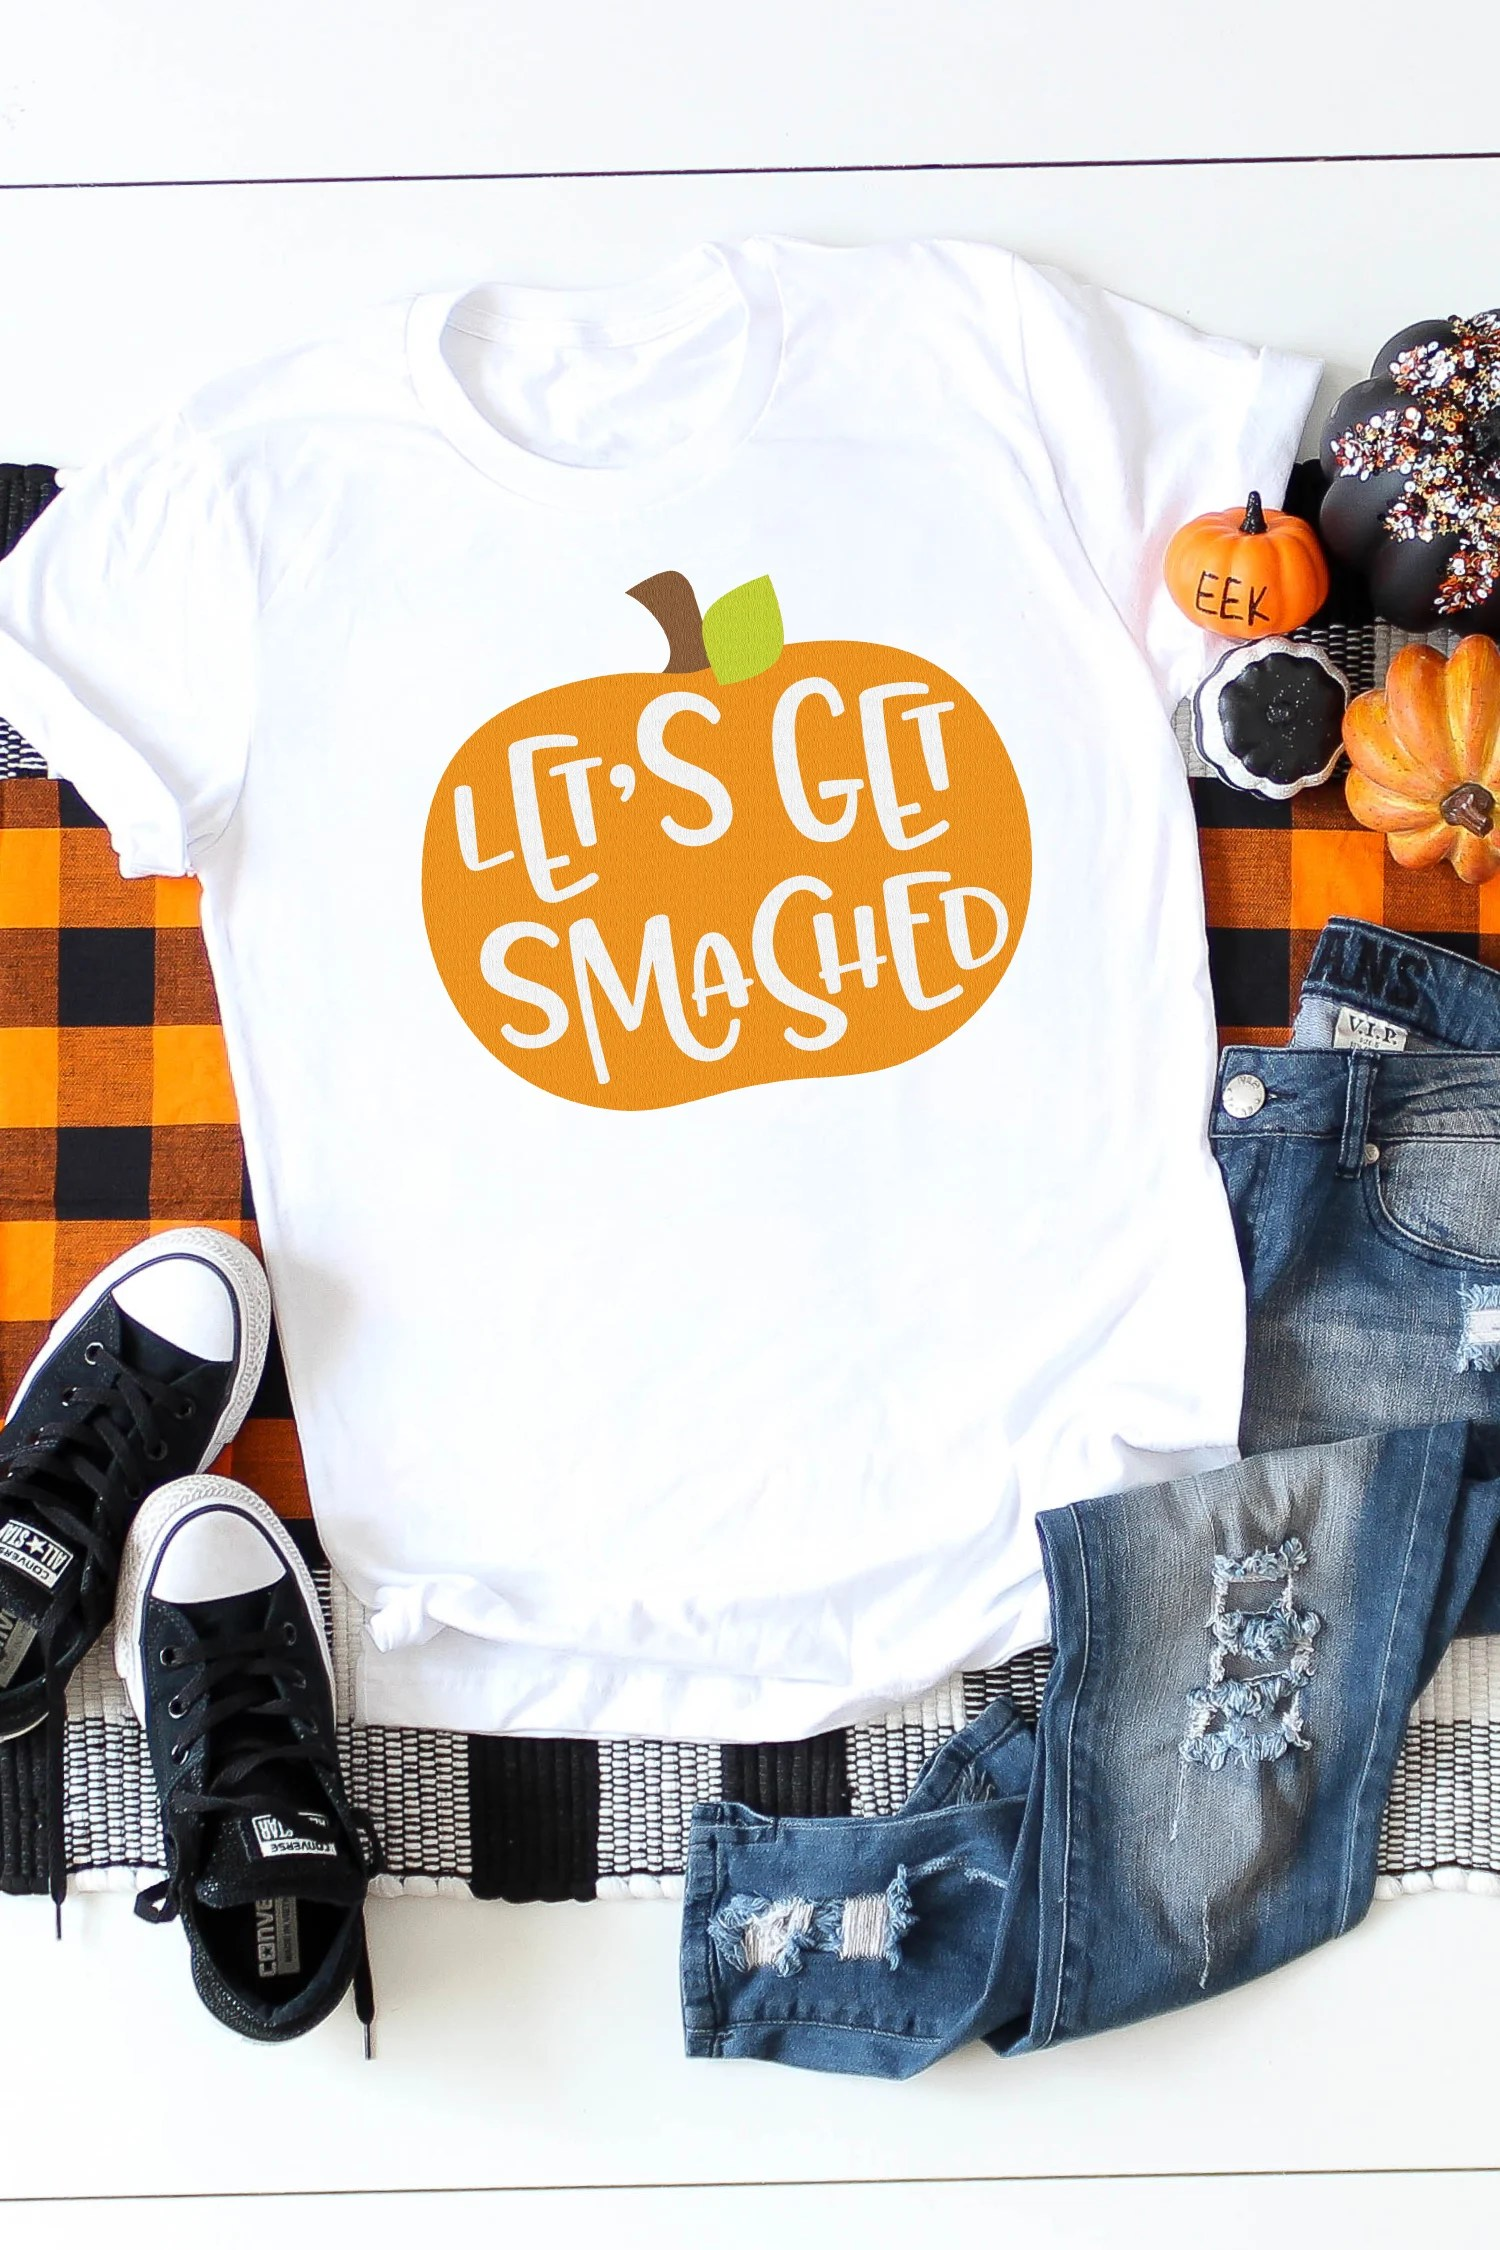 It's pumpkin season and that calls for celebration! Show your true pumpkin spirit with this Let's Get Smashed Pumpkin SVG. T-shirts, party decor, tumblers - everything needs a pumpkin touch.